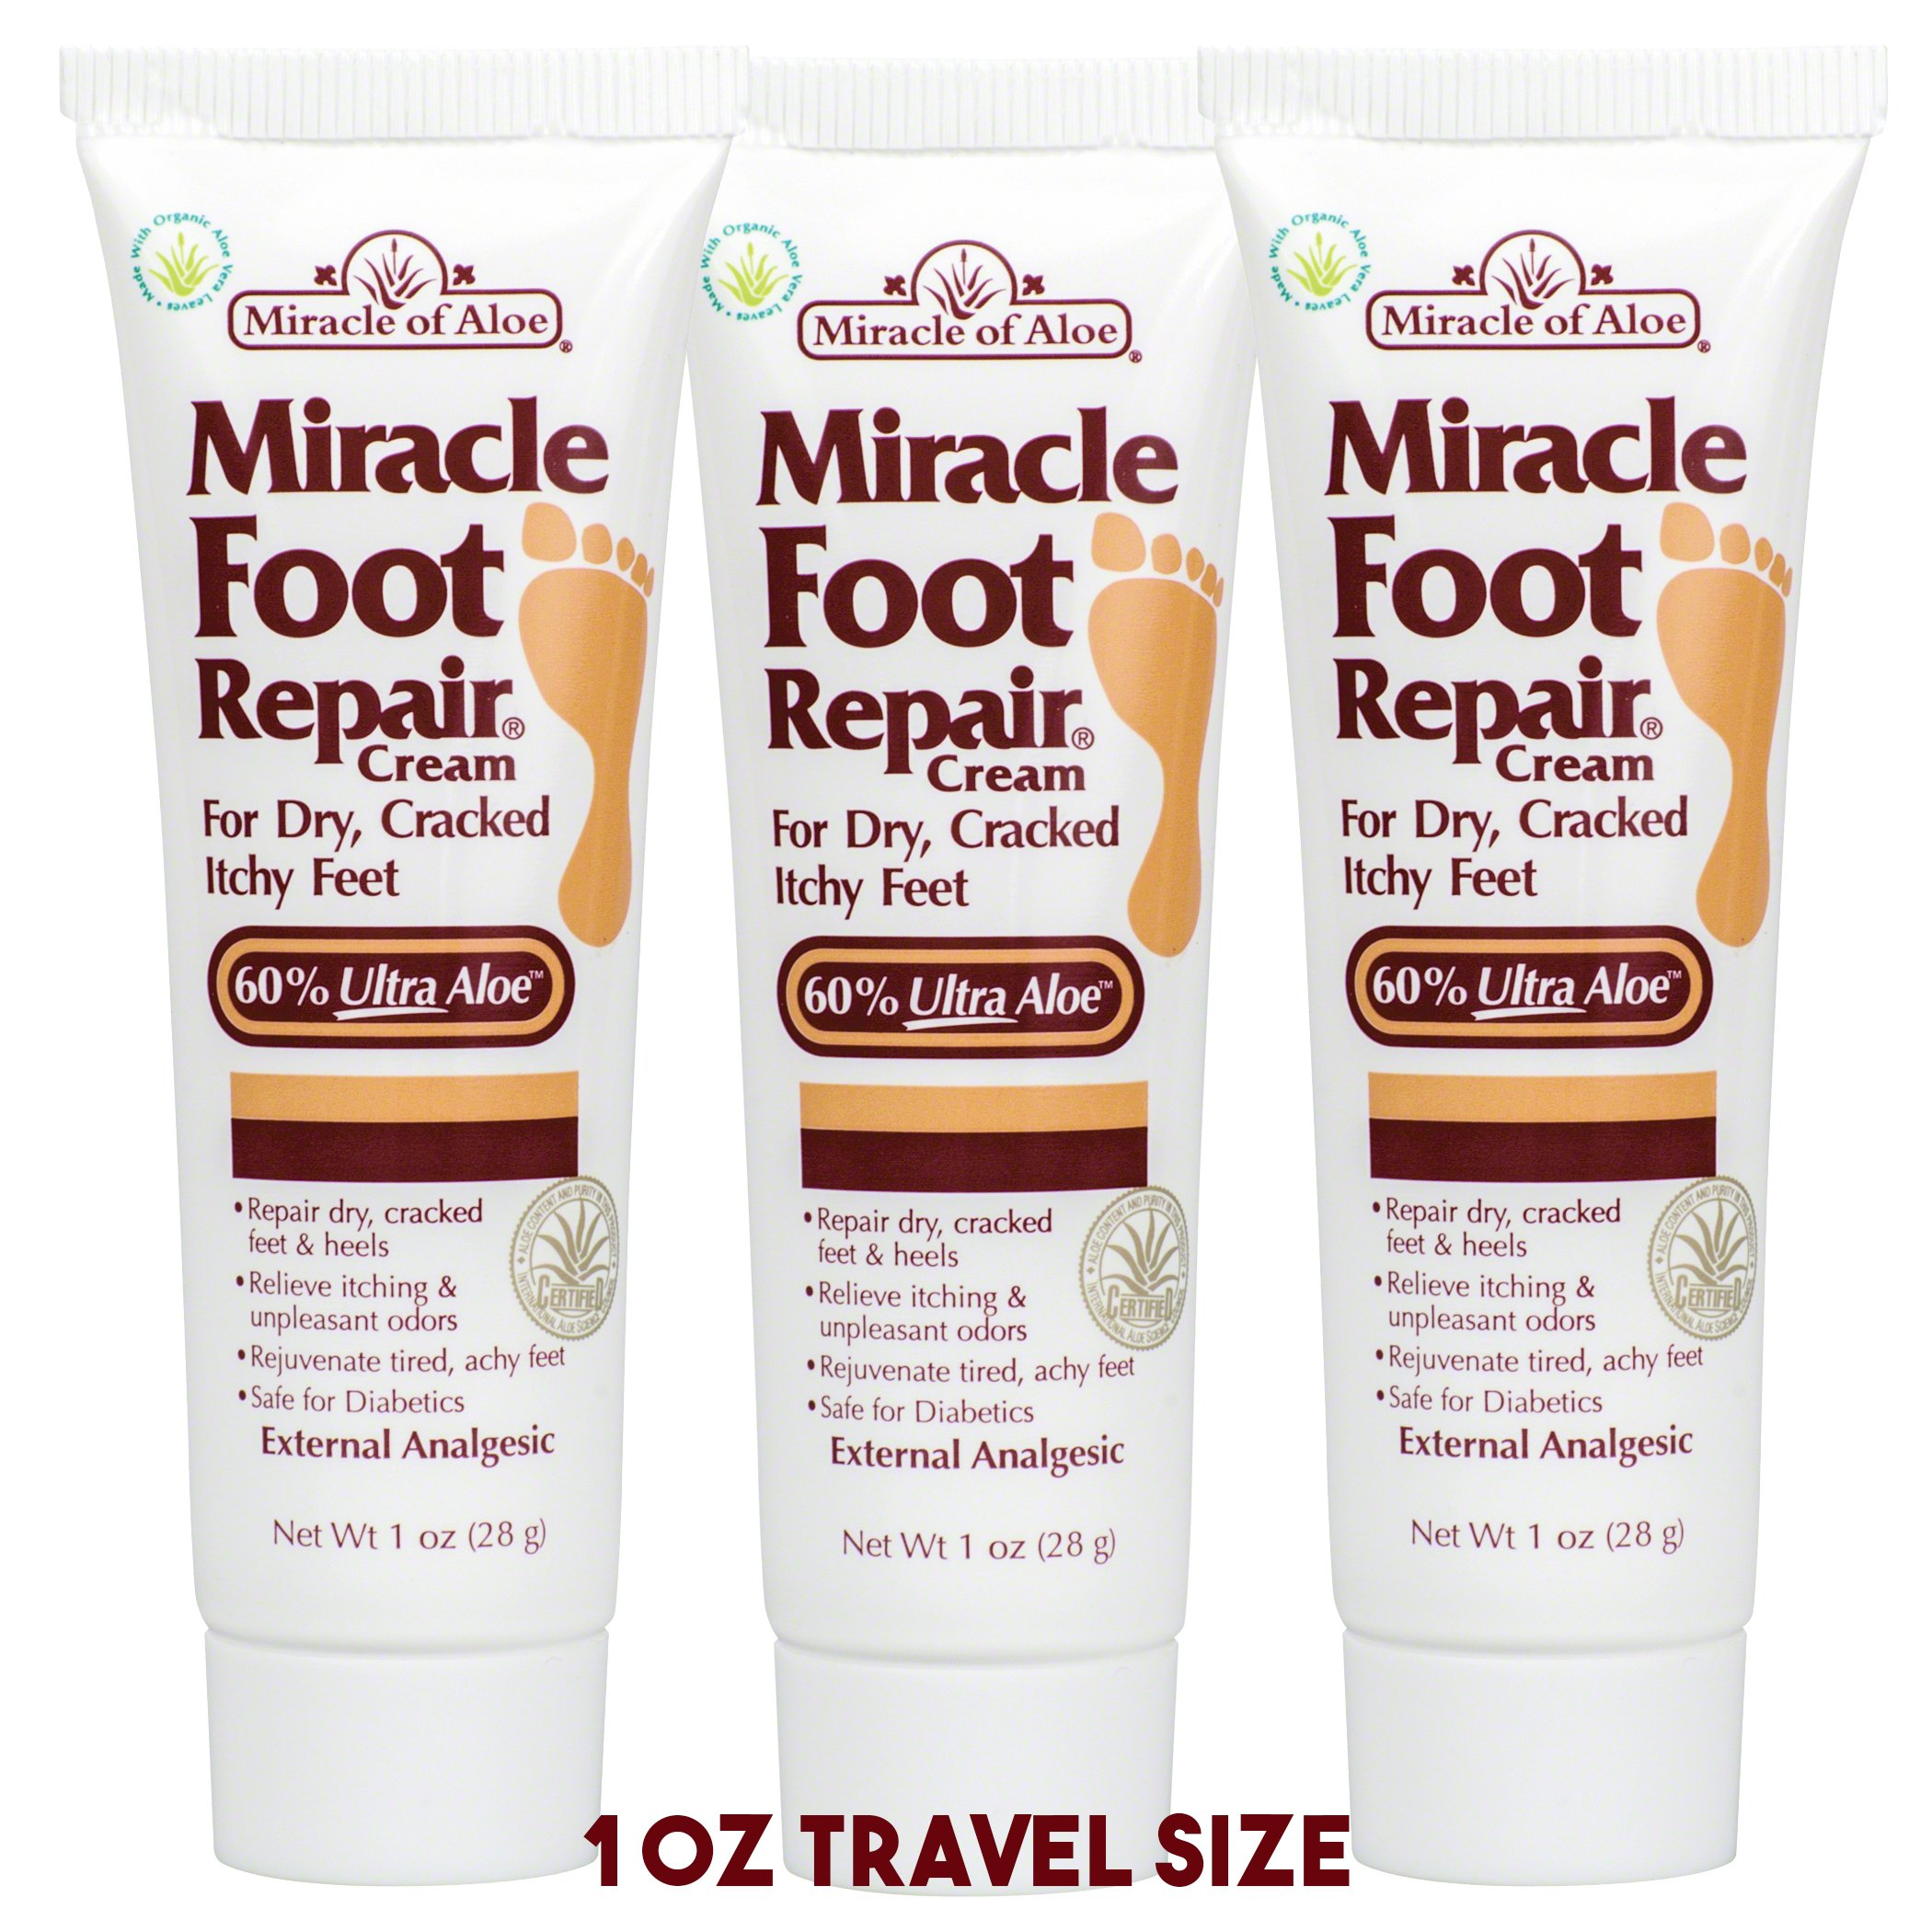 Miracle Foot Repair Cream 1 oz - 3 Pack with 60% Pure Organic Aloe Vera Softens Dry Cracked Feet.